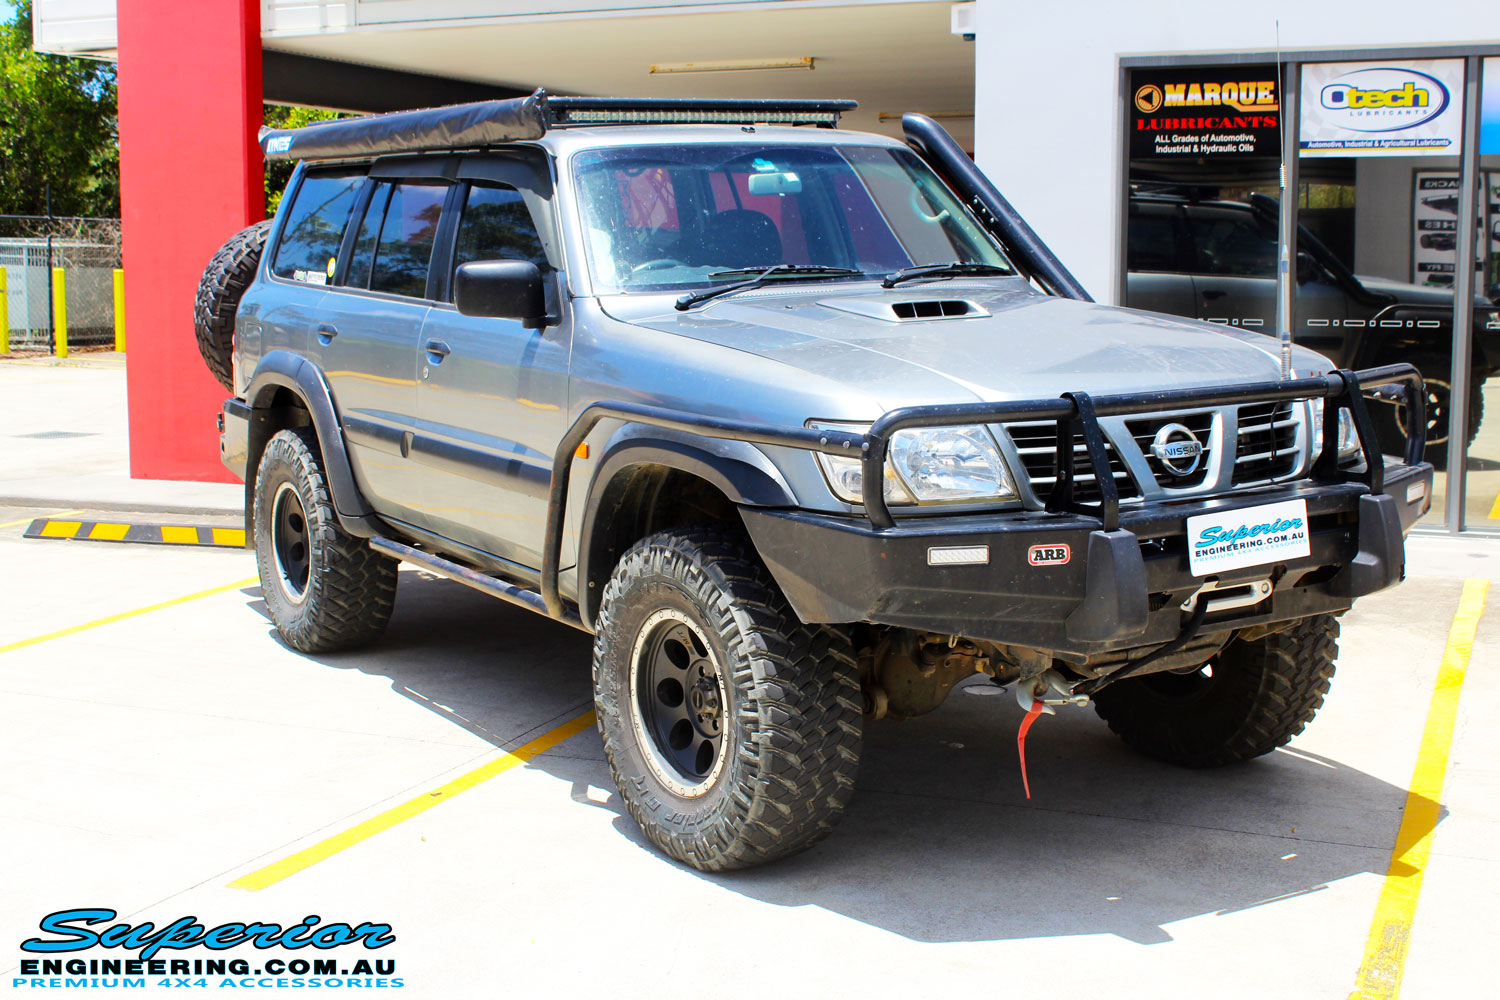 Right front side view of a Nissan GU Patrol Wagon in Silver On The Hoist @ Superior Engineering Deception Bay Showroom getting fitted with a Superior Coil Tower Brace Kit